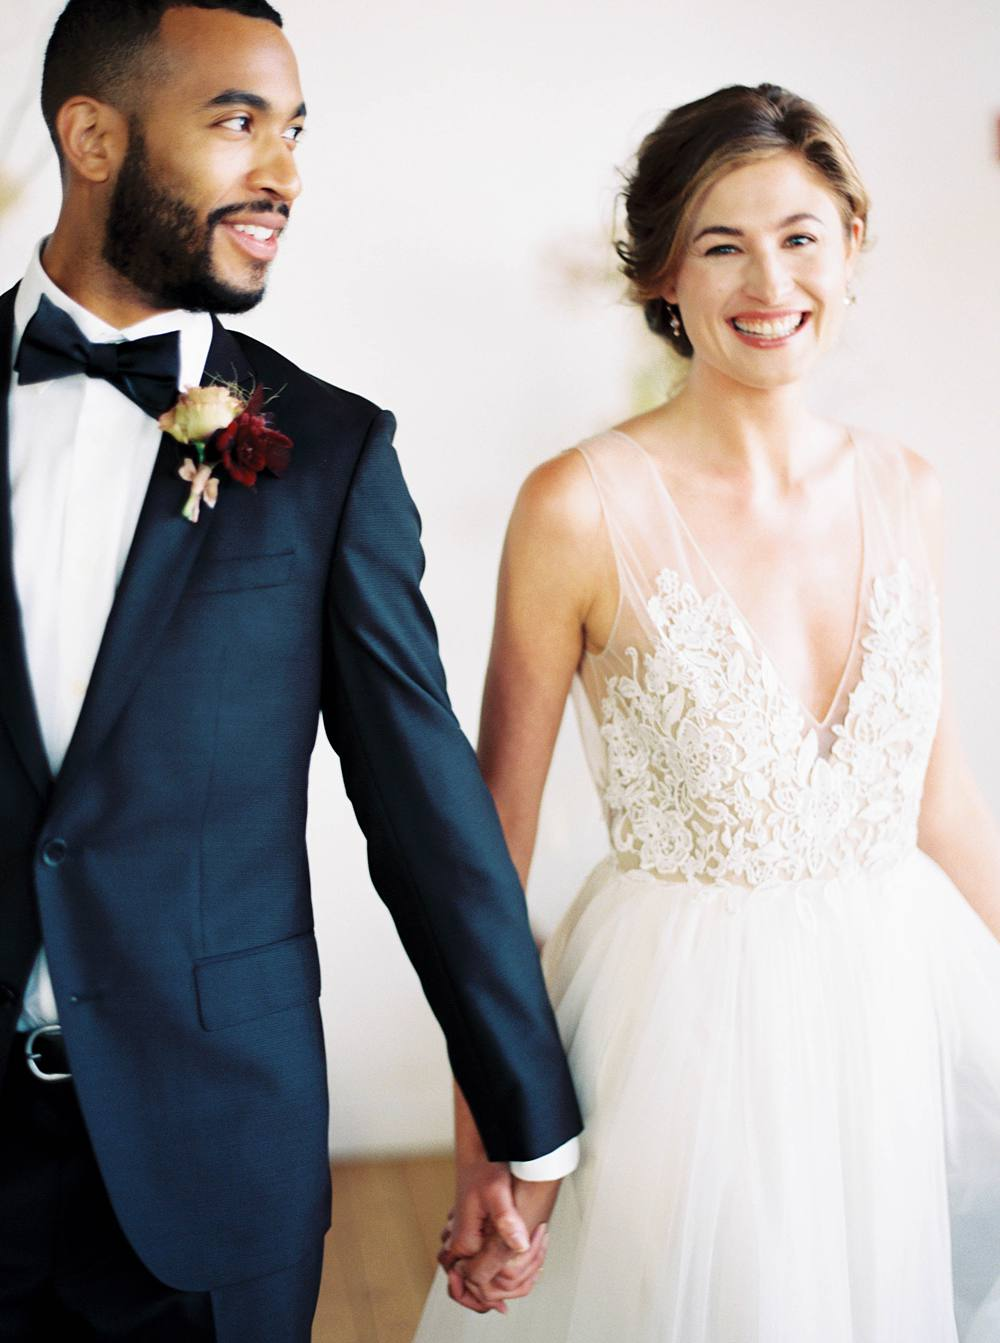 Mixed race bride and groom holding hands and smiling post wedding ceremony.